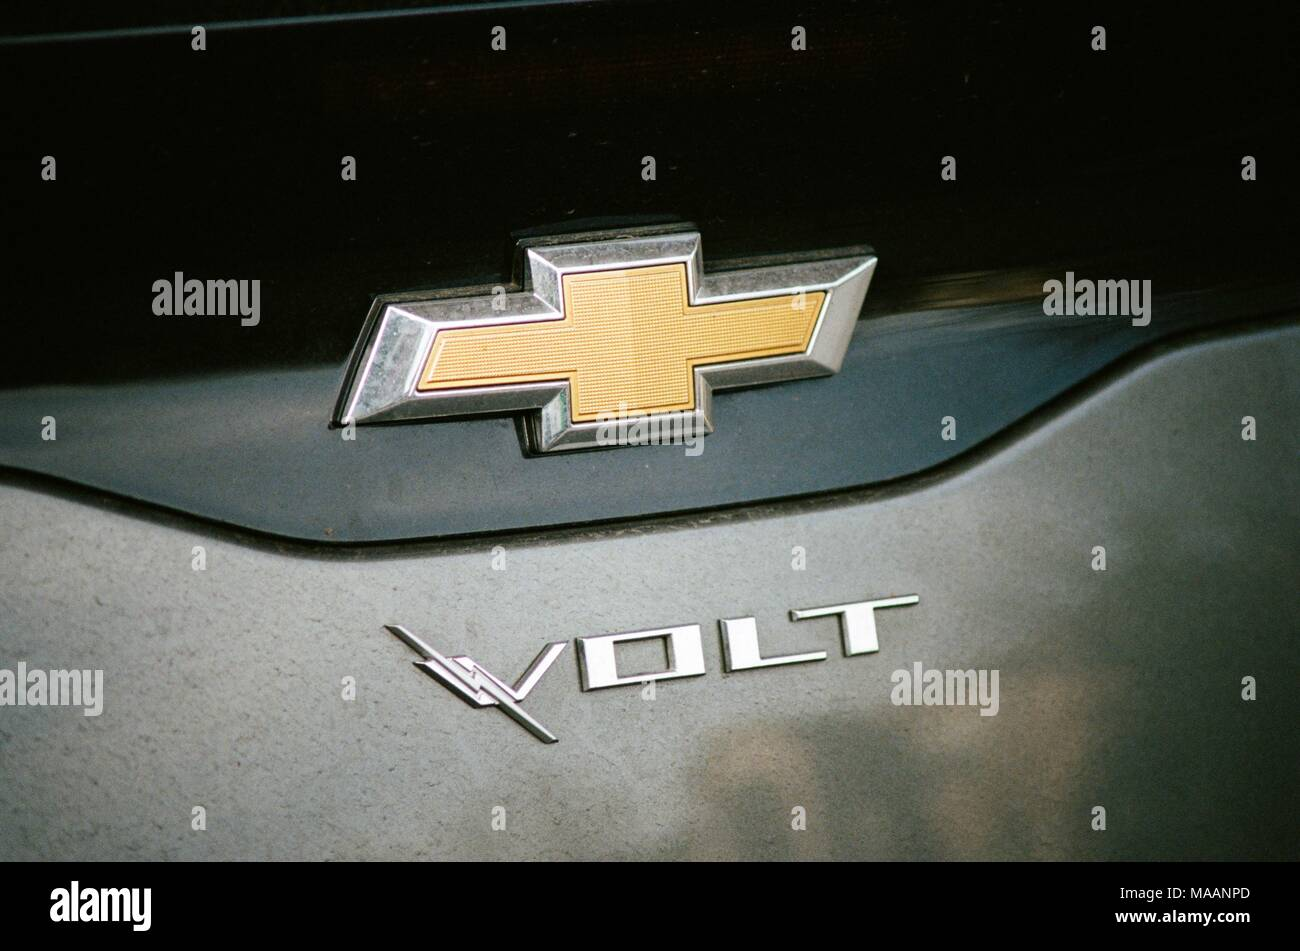 Small Electric Vehicle Stockfotos & Small Electric Vehicle Bilder ...